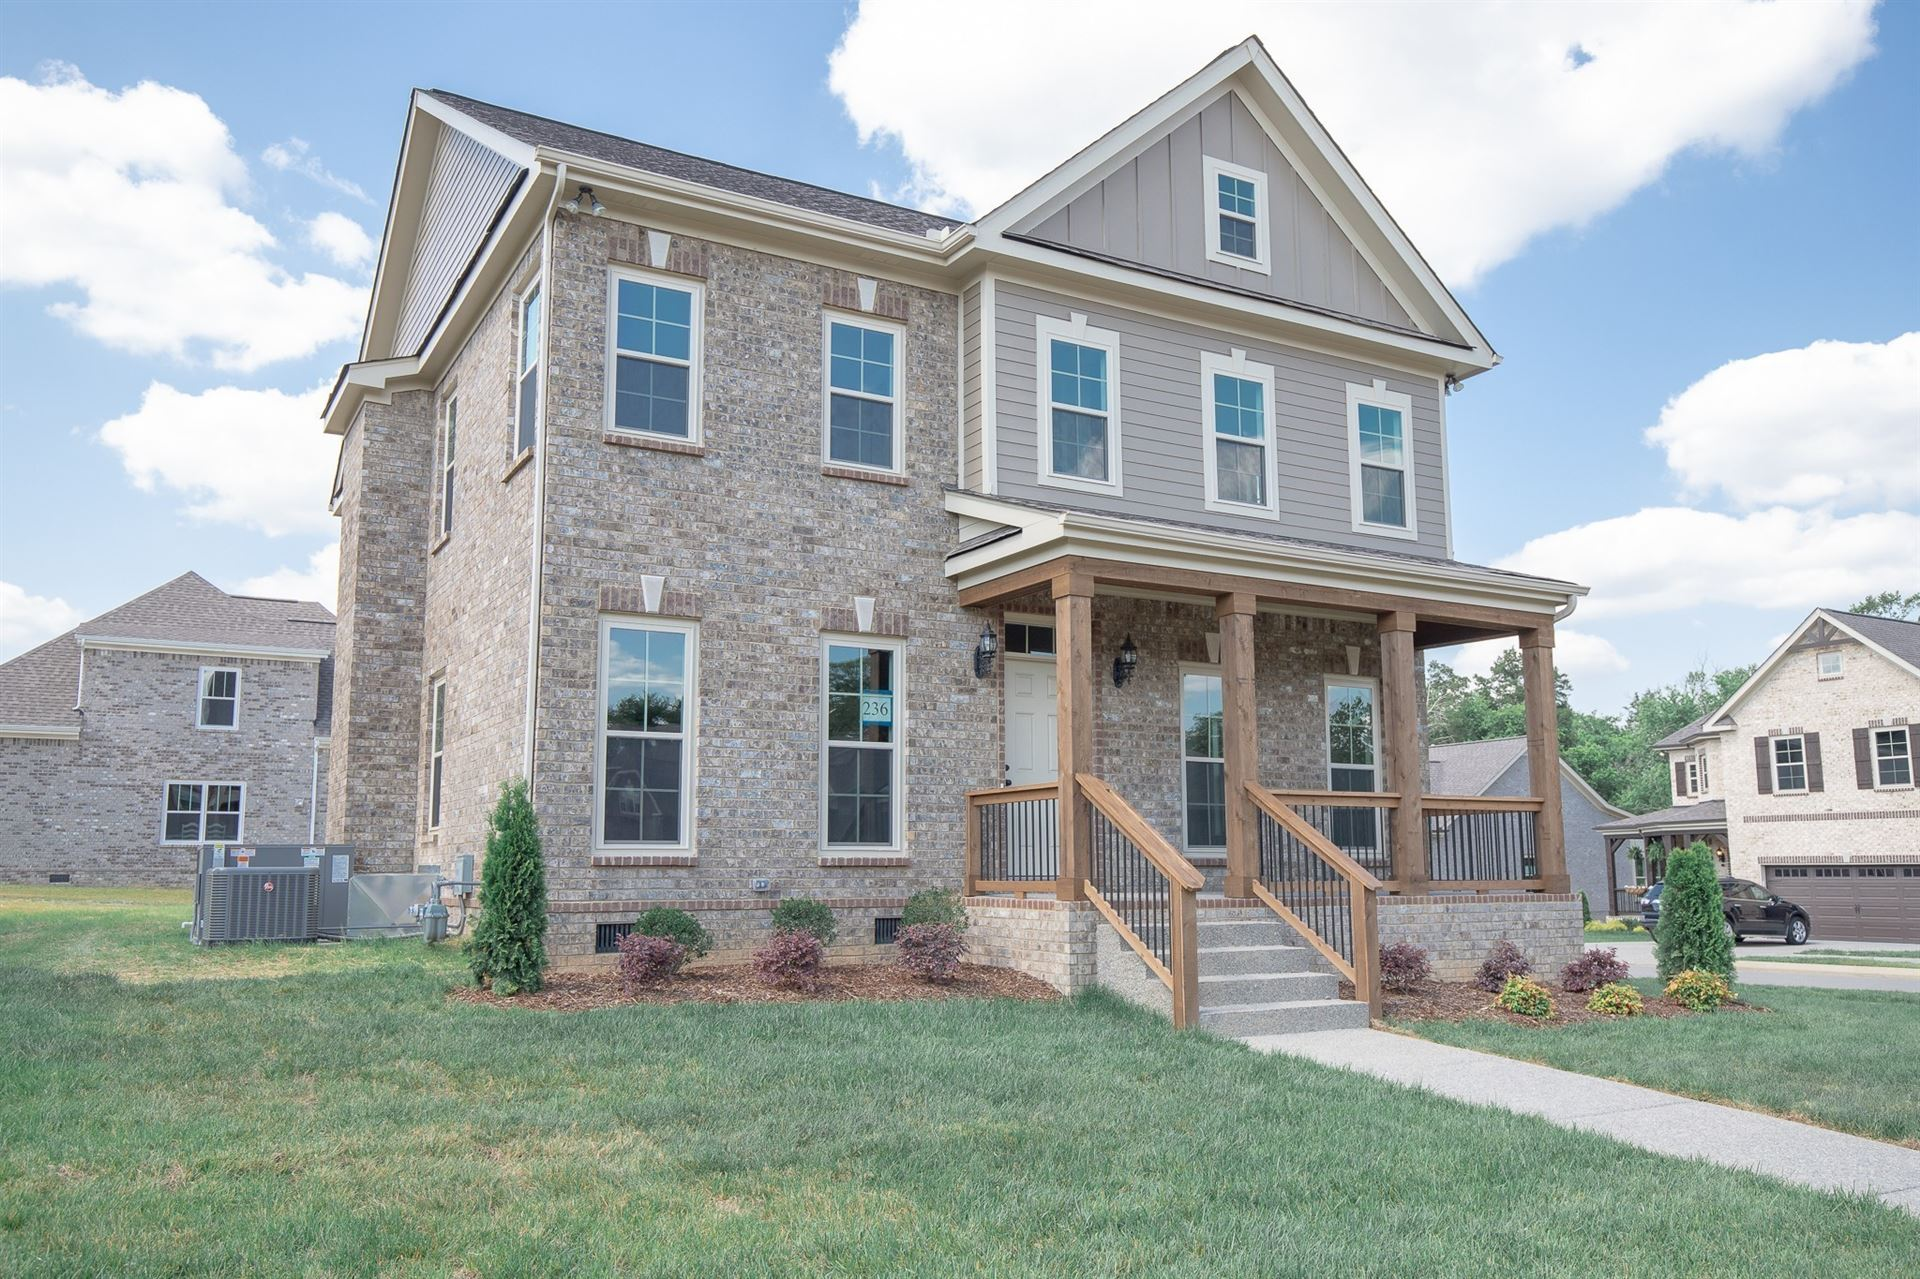 Photo of 9029 Safe Haven Place Lot 550, Spring Hill, TN 37174 (MLS # 2219014)